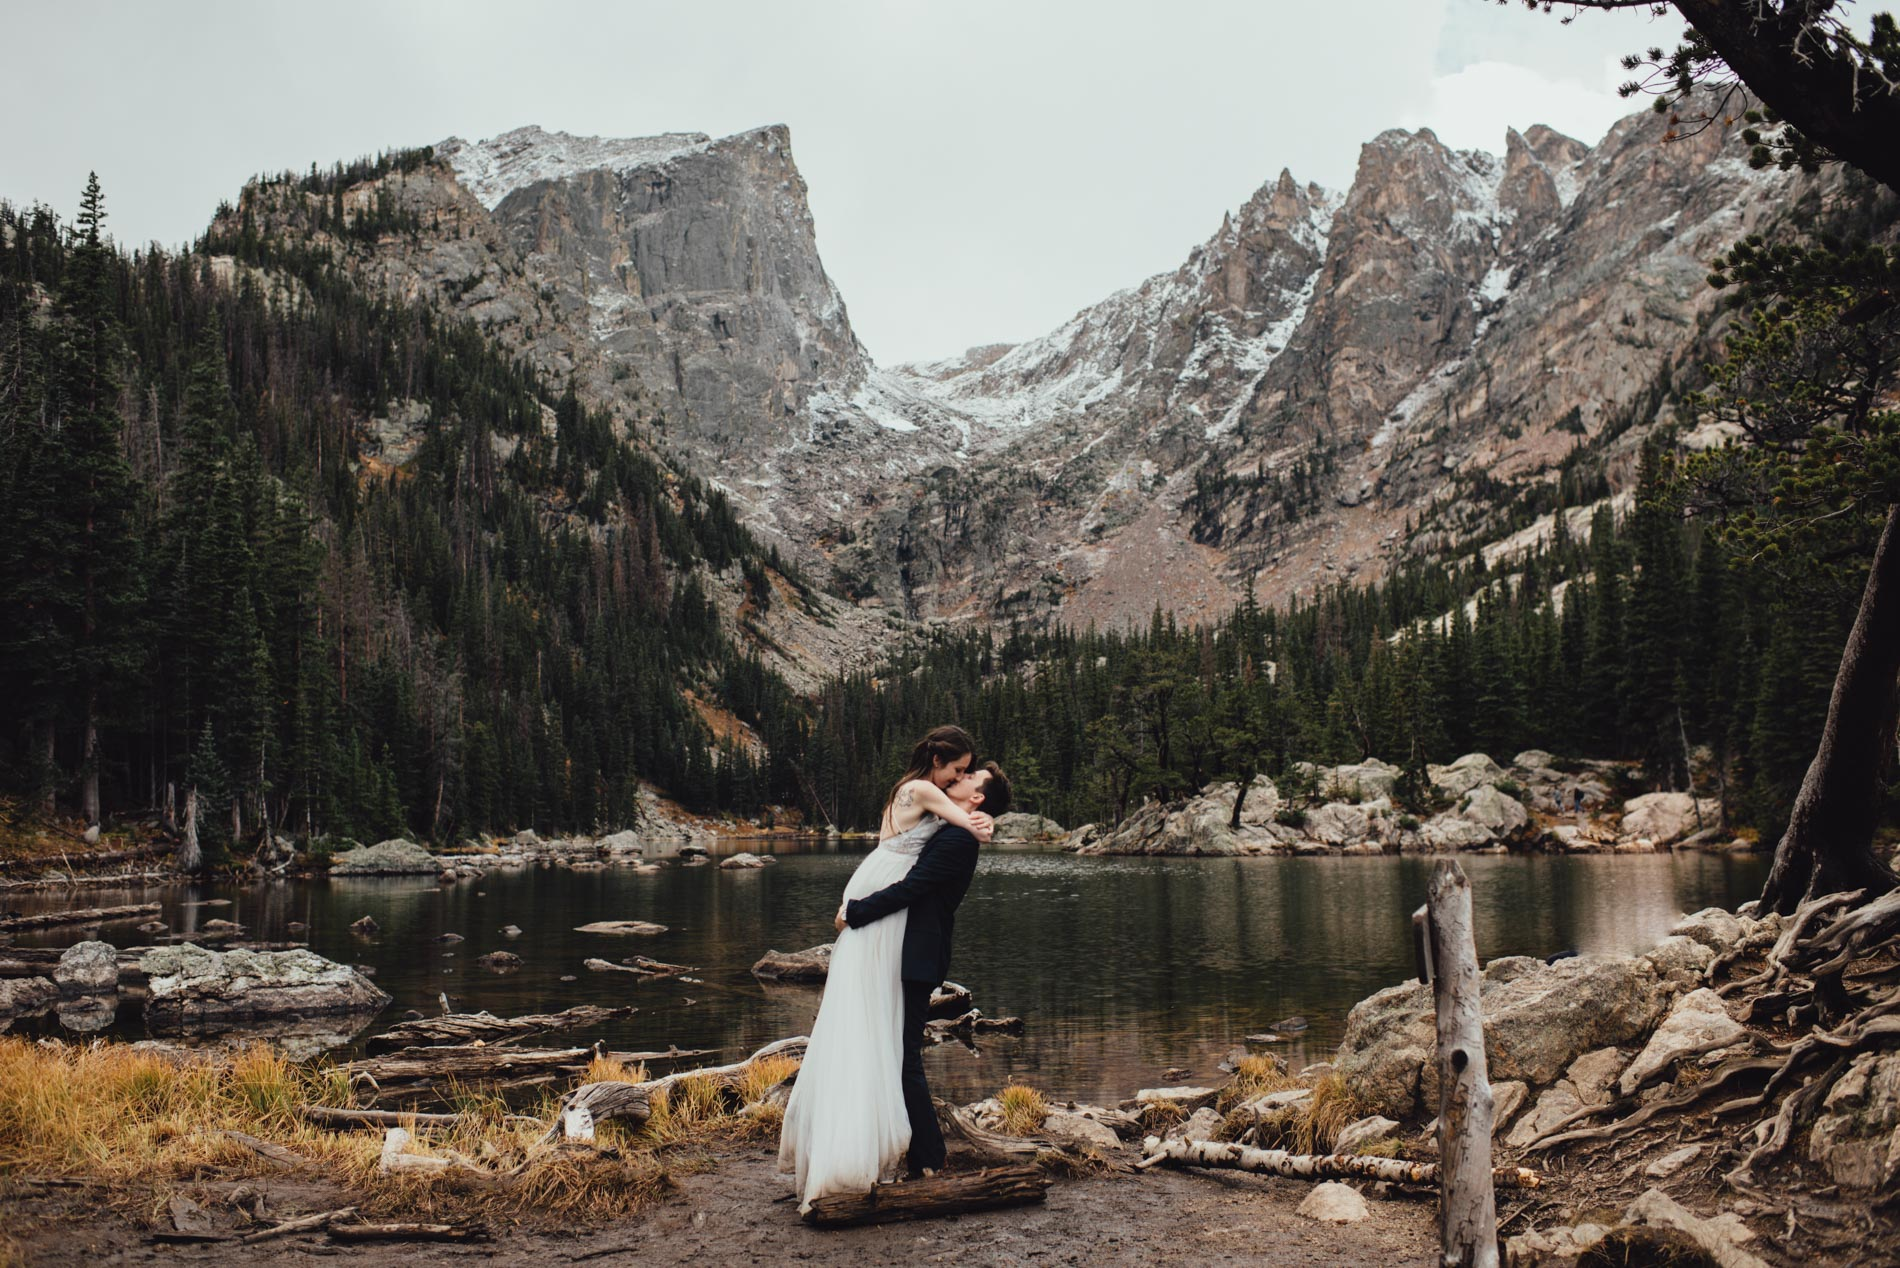 Adventurous-Wedding-Photography-Adventurous-Wedding-Photograph-Adventure-Elopement-Photographer-Adventurous-Elopement-Photograph-Adventurous-Elopement-Photographer-Adventurous-Destination-Elopement-Photographer-Destination-Elopement-Photography-Destination-Elopement-Packages-St-marys-glacier-Rocky-Mountain-National-Park-Photographer-Rocky-Mountain-National-Park-Photography-adventure-shoot-Wedding-RMNP-Photographer-RMNP-Photography-Colorado-Elopement-Colorado-Elopement-Photographer-Colorado-Elopement-Photography-Iceland-Elopement-Photographer-Iceland-Elopement-Packages-Hiking-Wedding-Hiking-Elopement-Photographer-Mountain-Wedding-Photographer-Mountain-Wedding-Photography-Colorado-Mountain-Wedding-Colorado-Mountain-Elopement-Adventure-wedding-adventure-elopement-Teresa-Woodhull-photography-Teresa-Woodhull-photographer-Intimate-wedding-photographer-Intimate-wedding-photography-elopement-photographer-traveling-wedding-photographer-traveling-elopement-photographer-Adventure-elopement-photographer-Adventure-wedding-photographer-Destination-wedding-Destination-elopement-Destination-wedding-photography-Destination-wedding-photographer-Teresa-Woodhull-Intimate-Wedding-Photography-Teresa-Woodhull-Intimate-Wedding-Photographer-Teresa-Woodhull-Elopement-Photography-Teresa-Woodhull-Elopement-Photographer-Elopement-Photography-Intimate-Elopement-Photographer-Intimate-Elopement-Photography-Elopement-Wedding-Weddings-Elope-Elopements-Intimate-Weddings-Adventure-Weddings-Adventure-Engagement-Photograph-Adventure-Engagement-Photograph-wedding-gifographer-wedding-gif-engagement-gif-